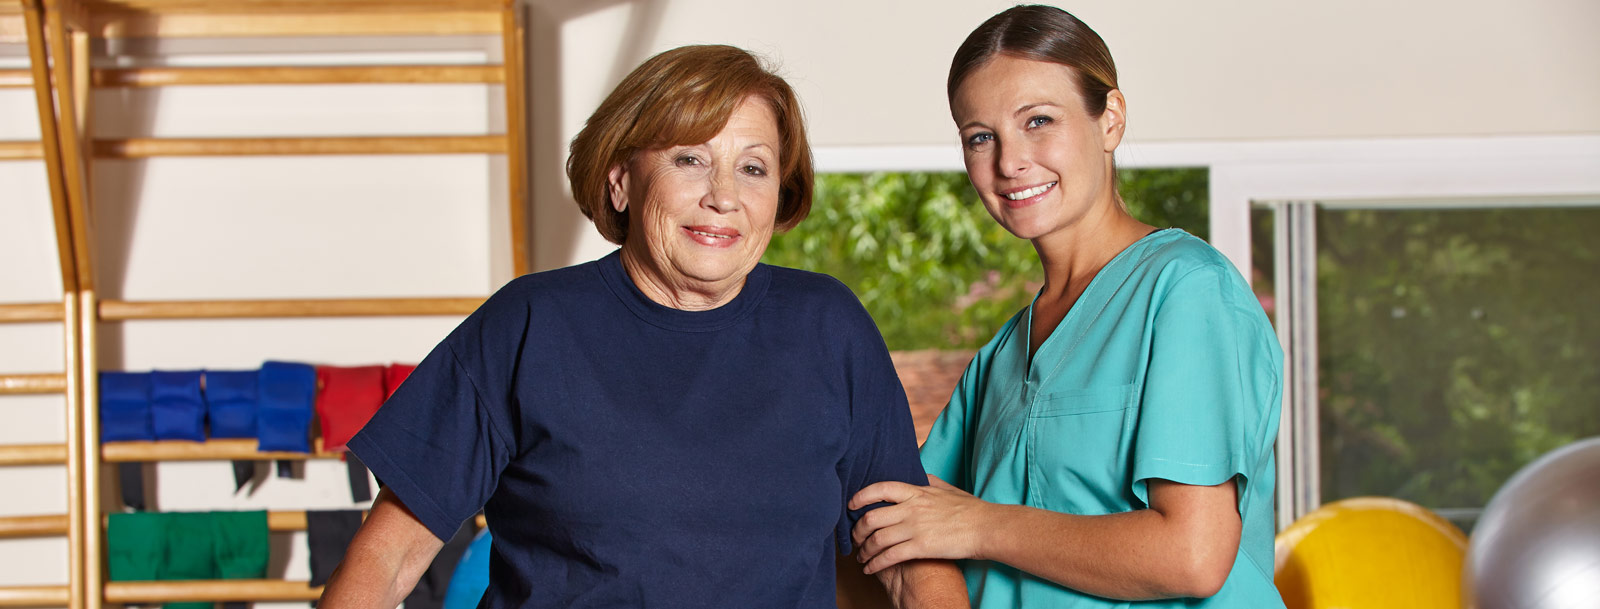 Orthopedic services at the senior living facility in Olathe